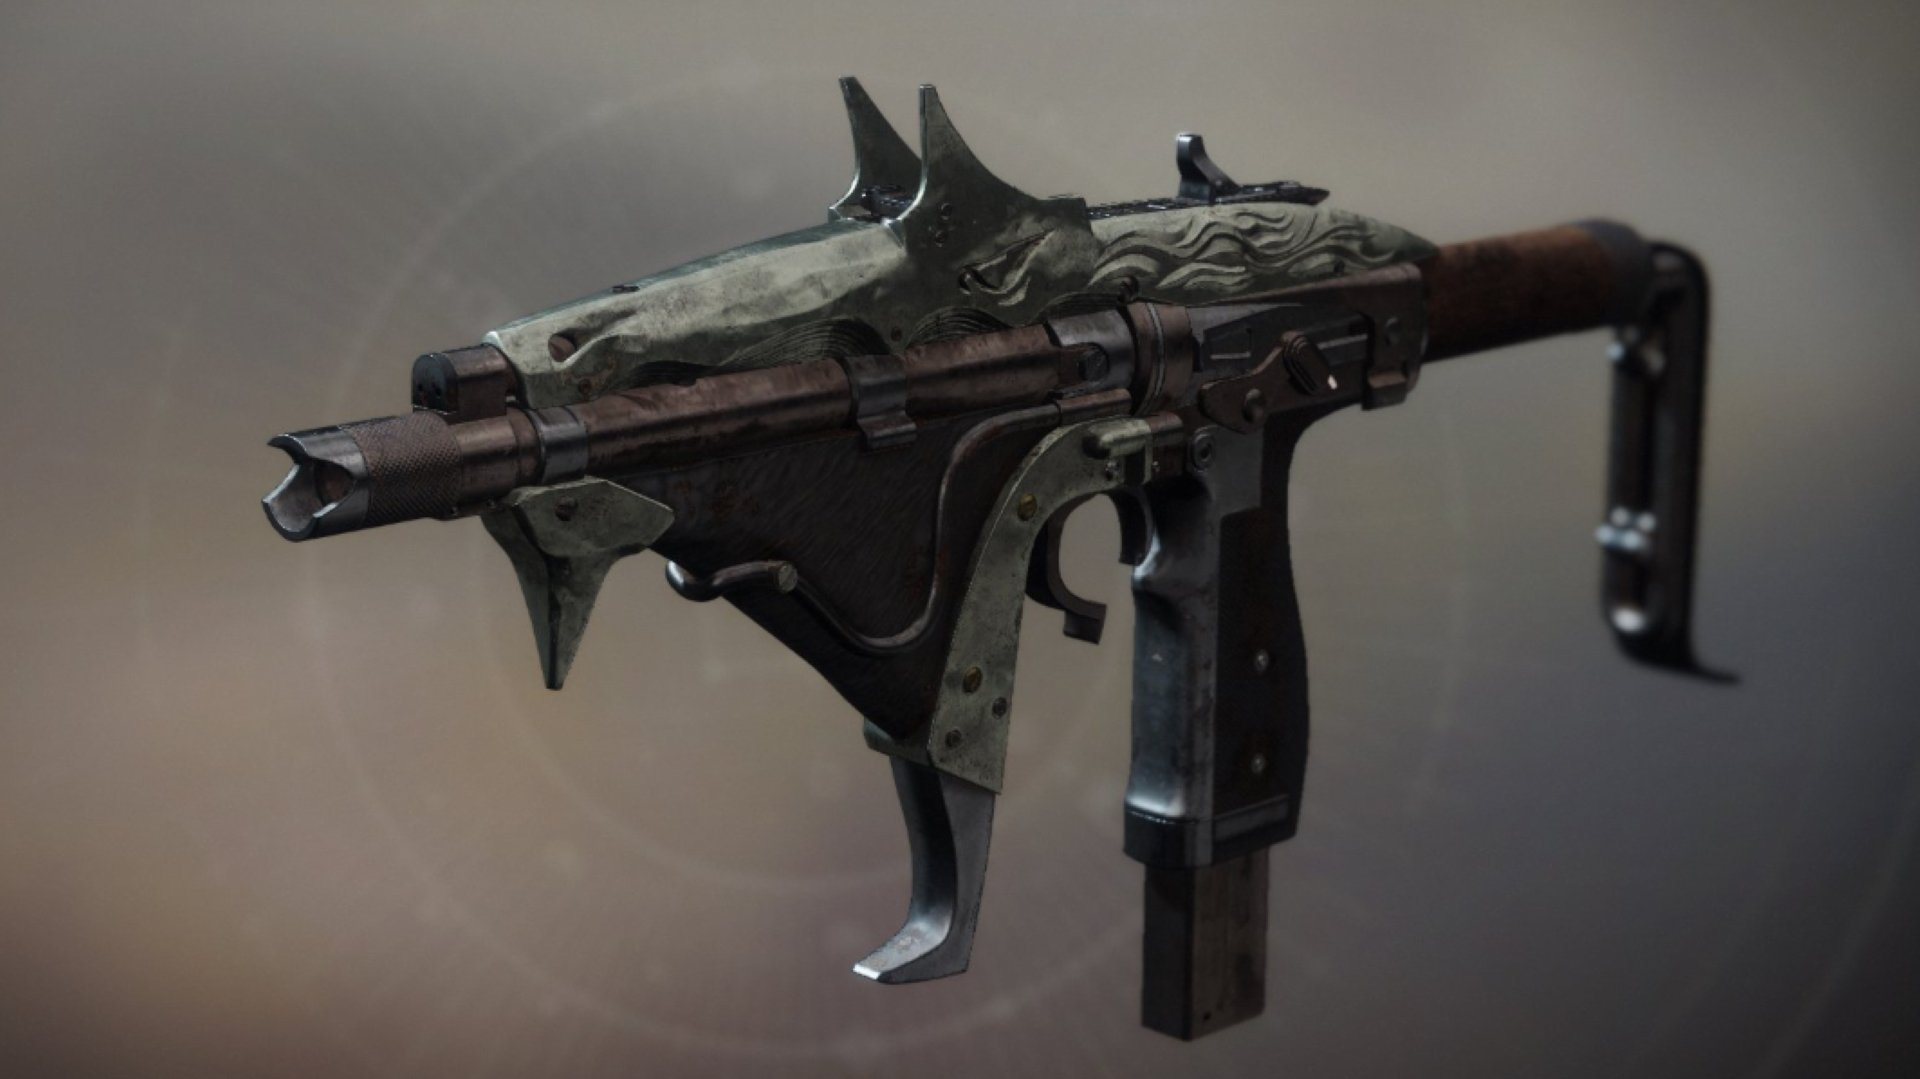 Get the Tarrabah Exotic SMG in Destiny 2